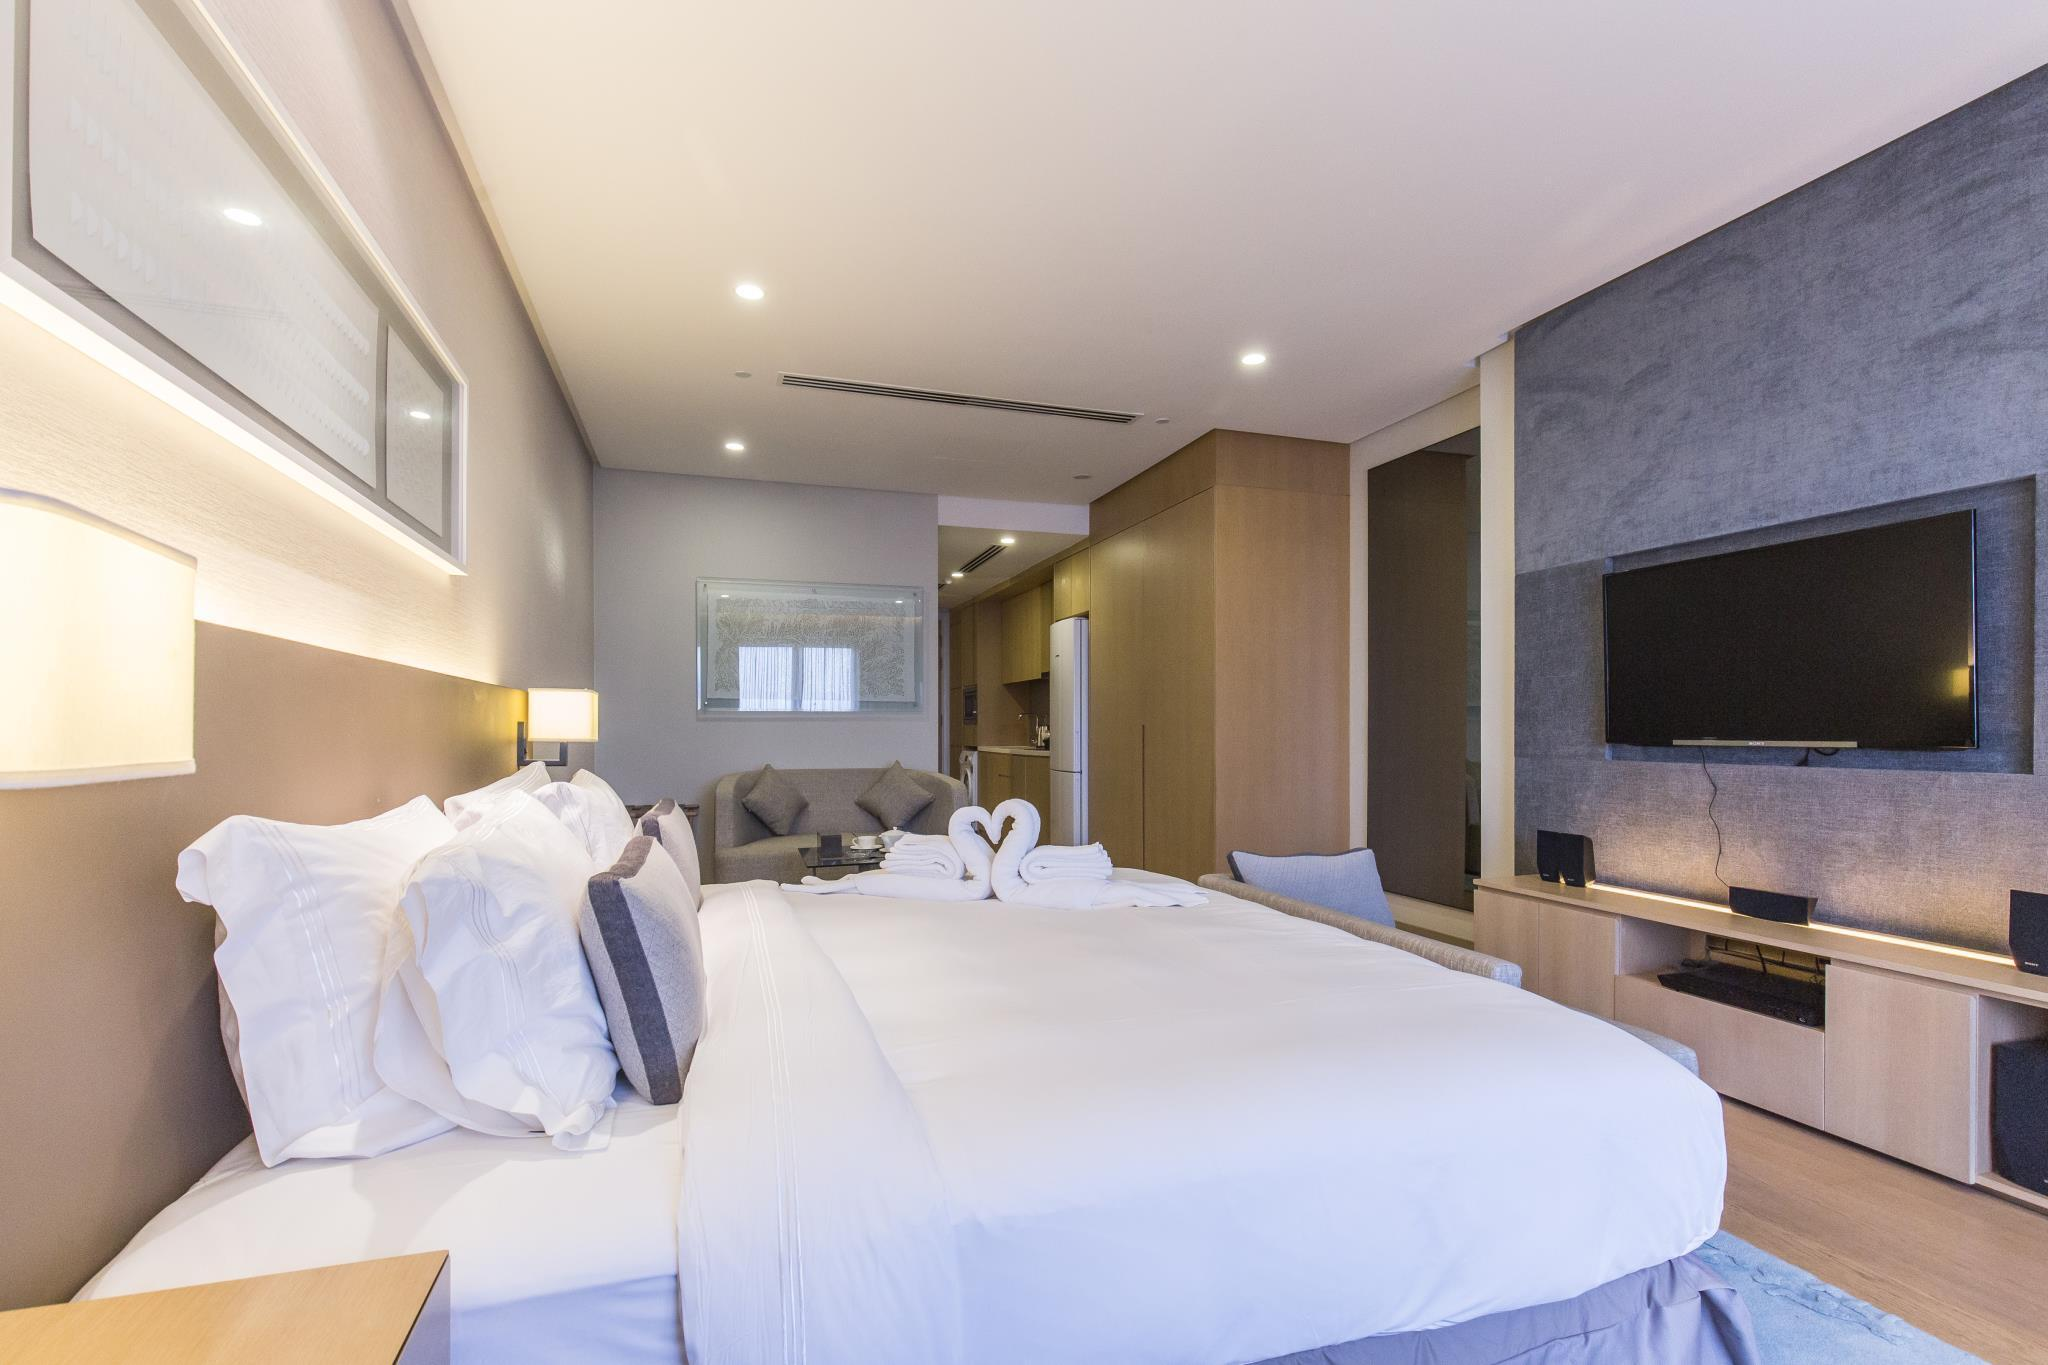 188 Private Suites By Subhome Kuala Lumpur Free Cancellation 2020 Deals Photos Reviews From 35